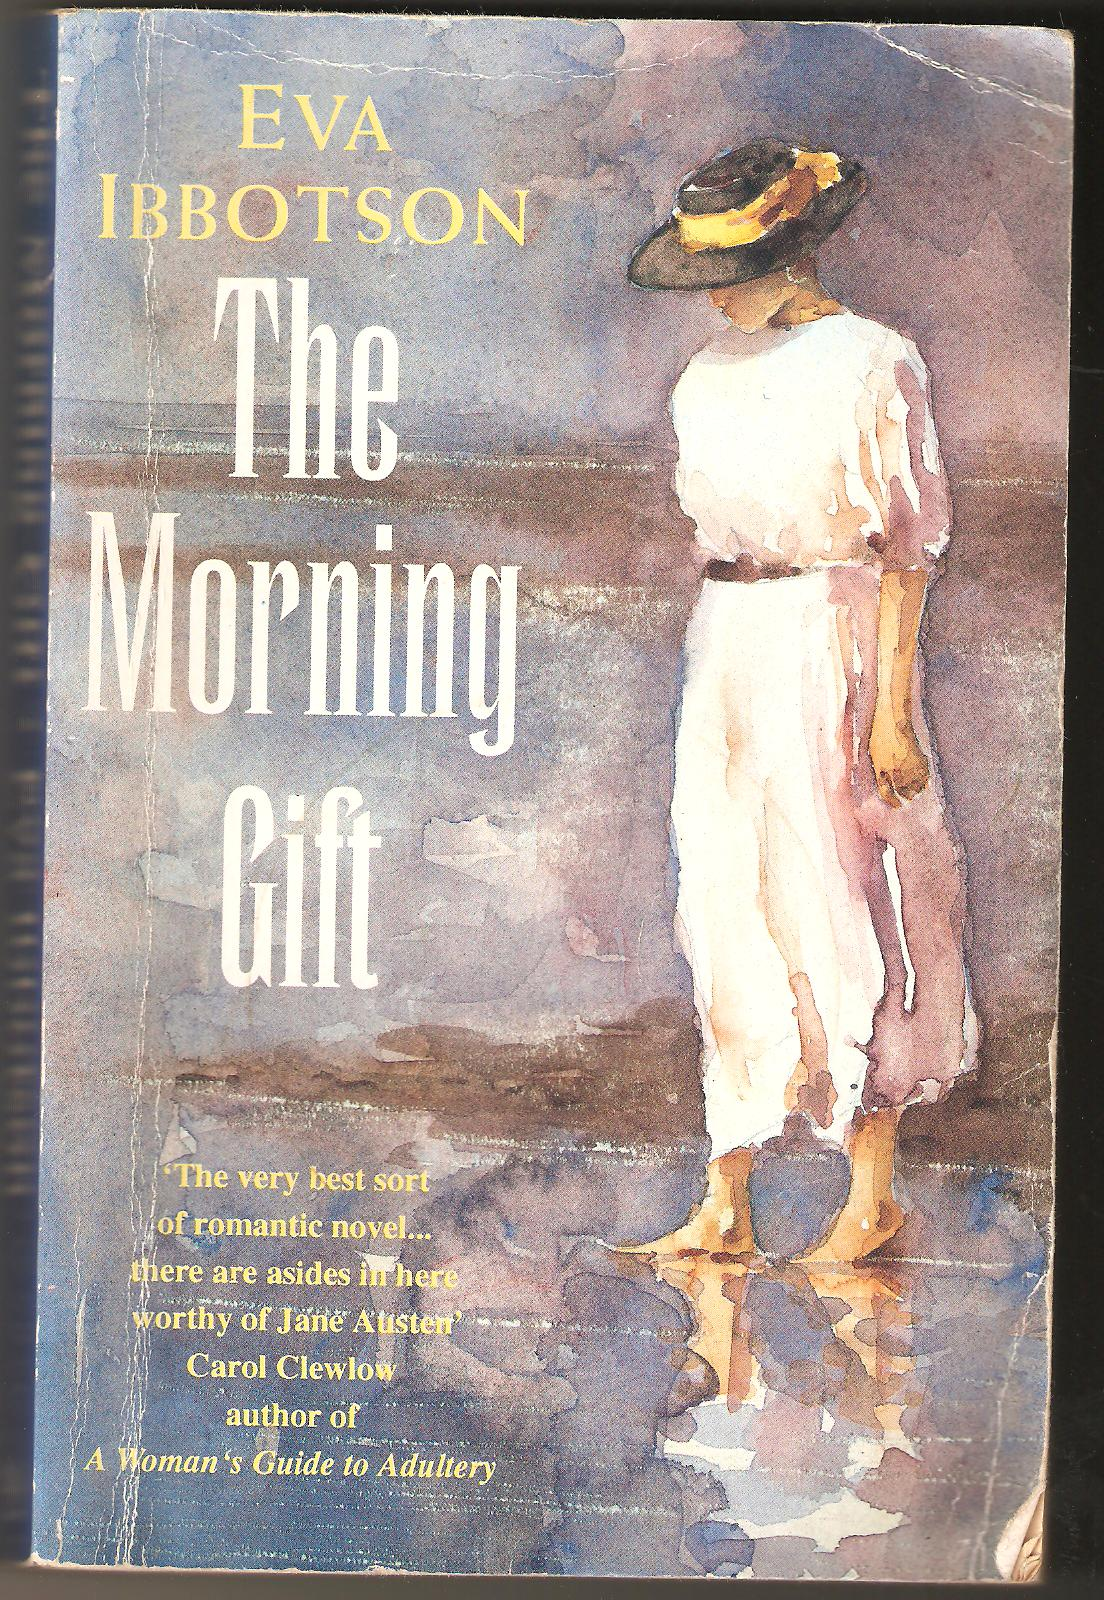 My own favourite of her novels is The Morning Gift, with its unlikely St  George of a hero and its gloriously logical and slighty loopy heroine.